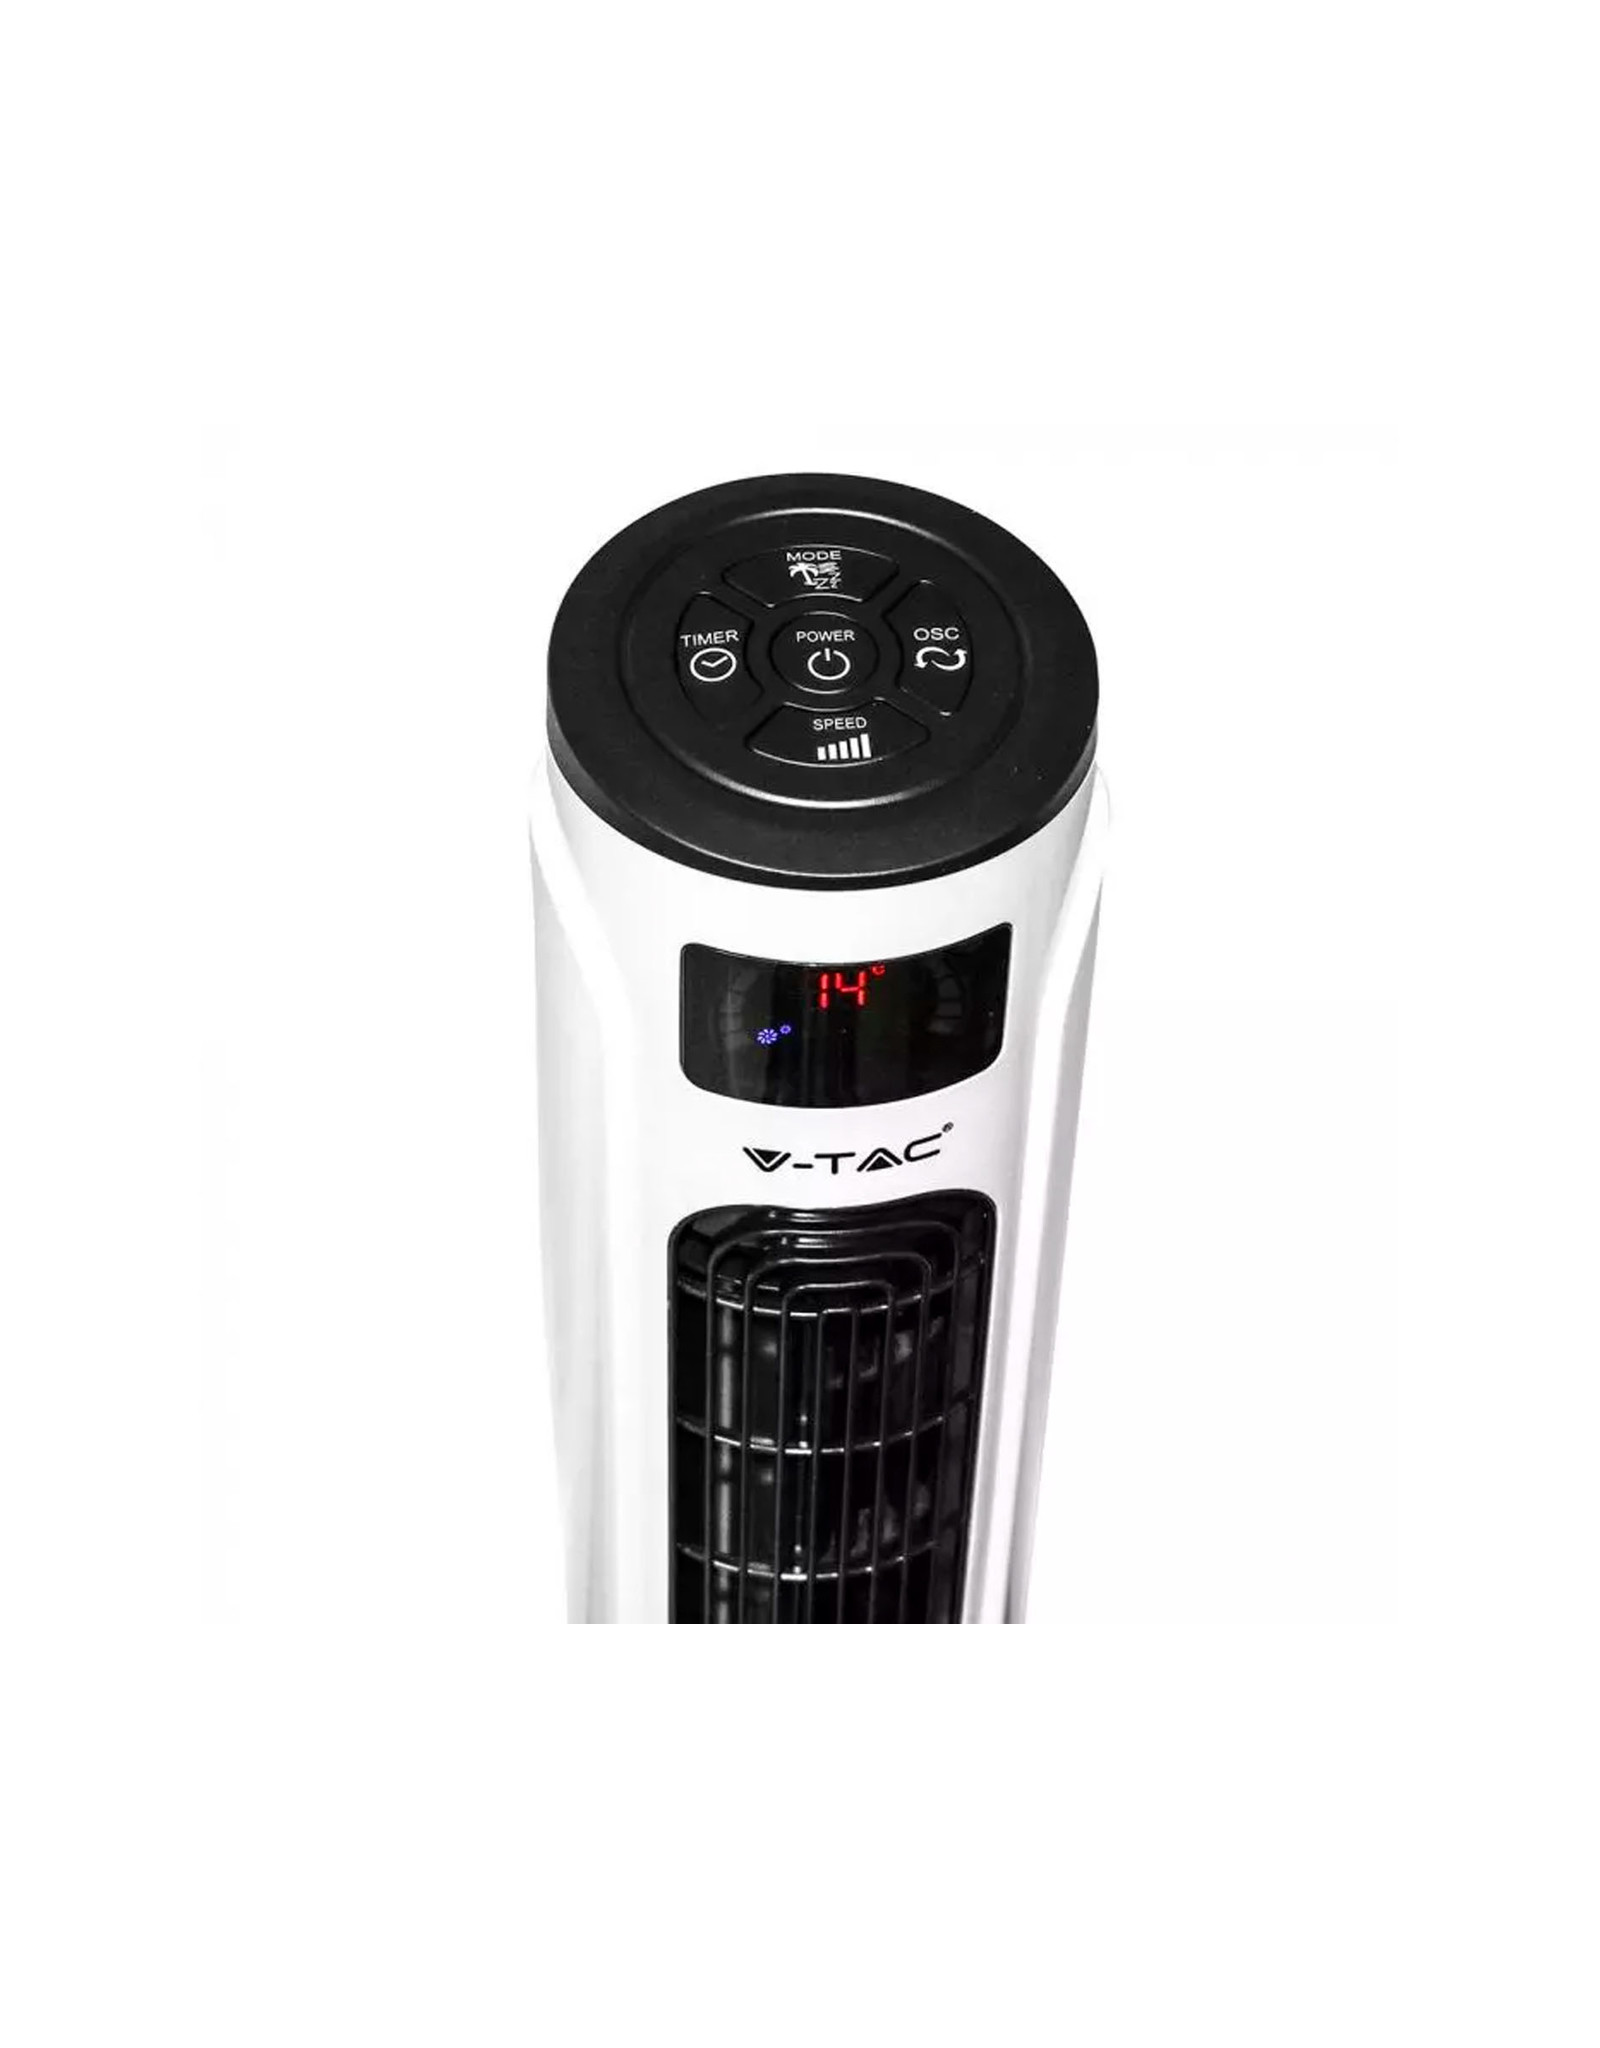 V-tac V-TAC | VT-5547 55W LED TOWER FAN WITH TEMPERATURE DISPLAY AND REMOTE CONTROL(46INCH)